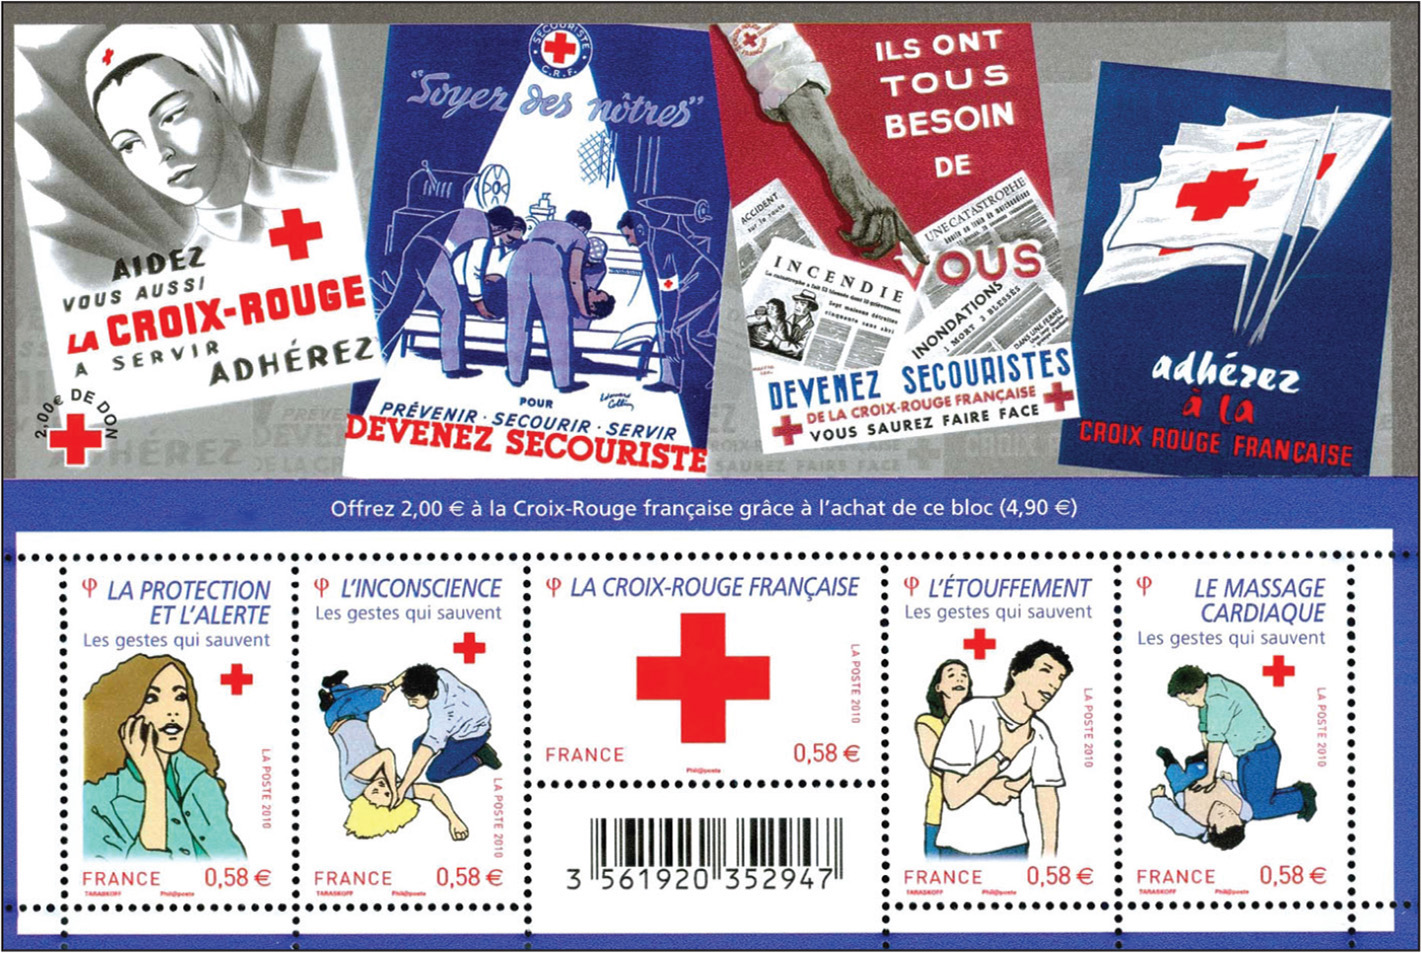 French souvenir sheet promoting the French Red Cross.